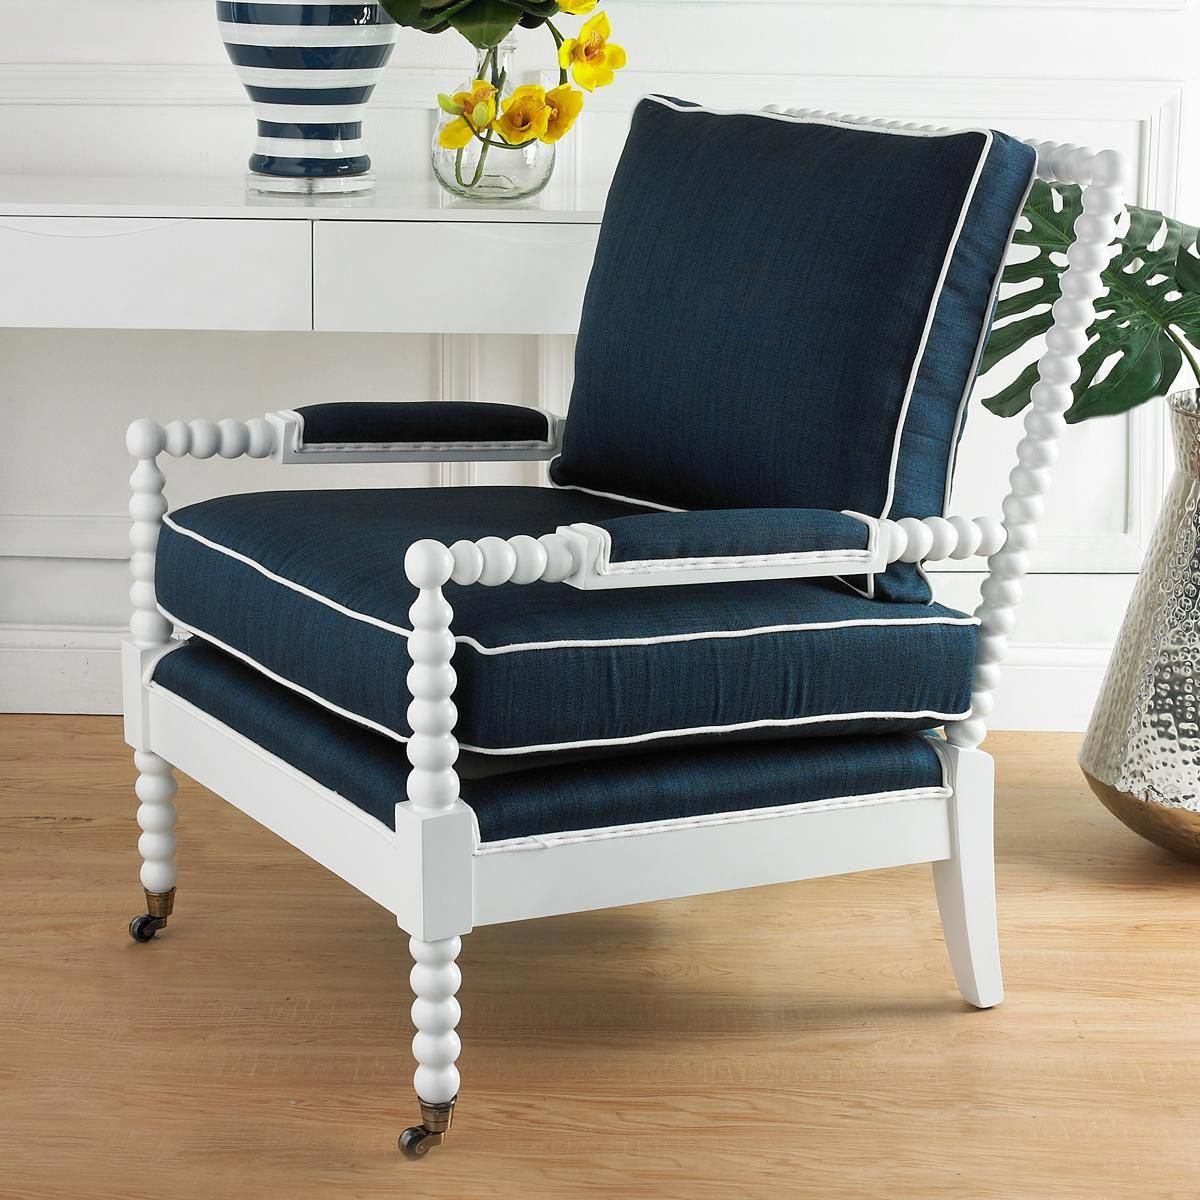 Chairs bed bath and beyond tommybahamabeachchair